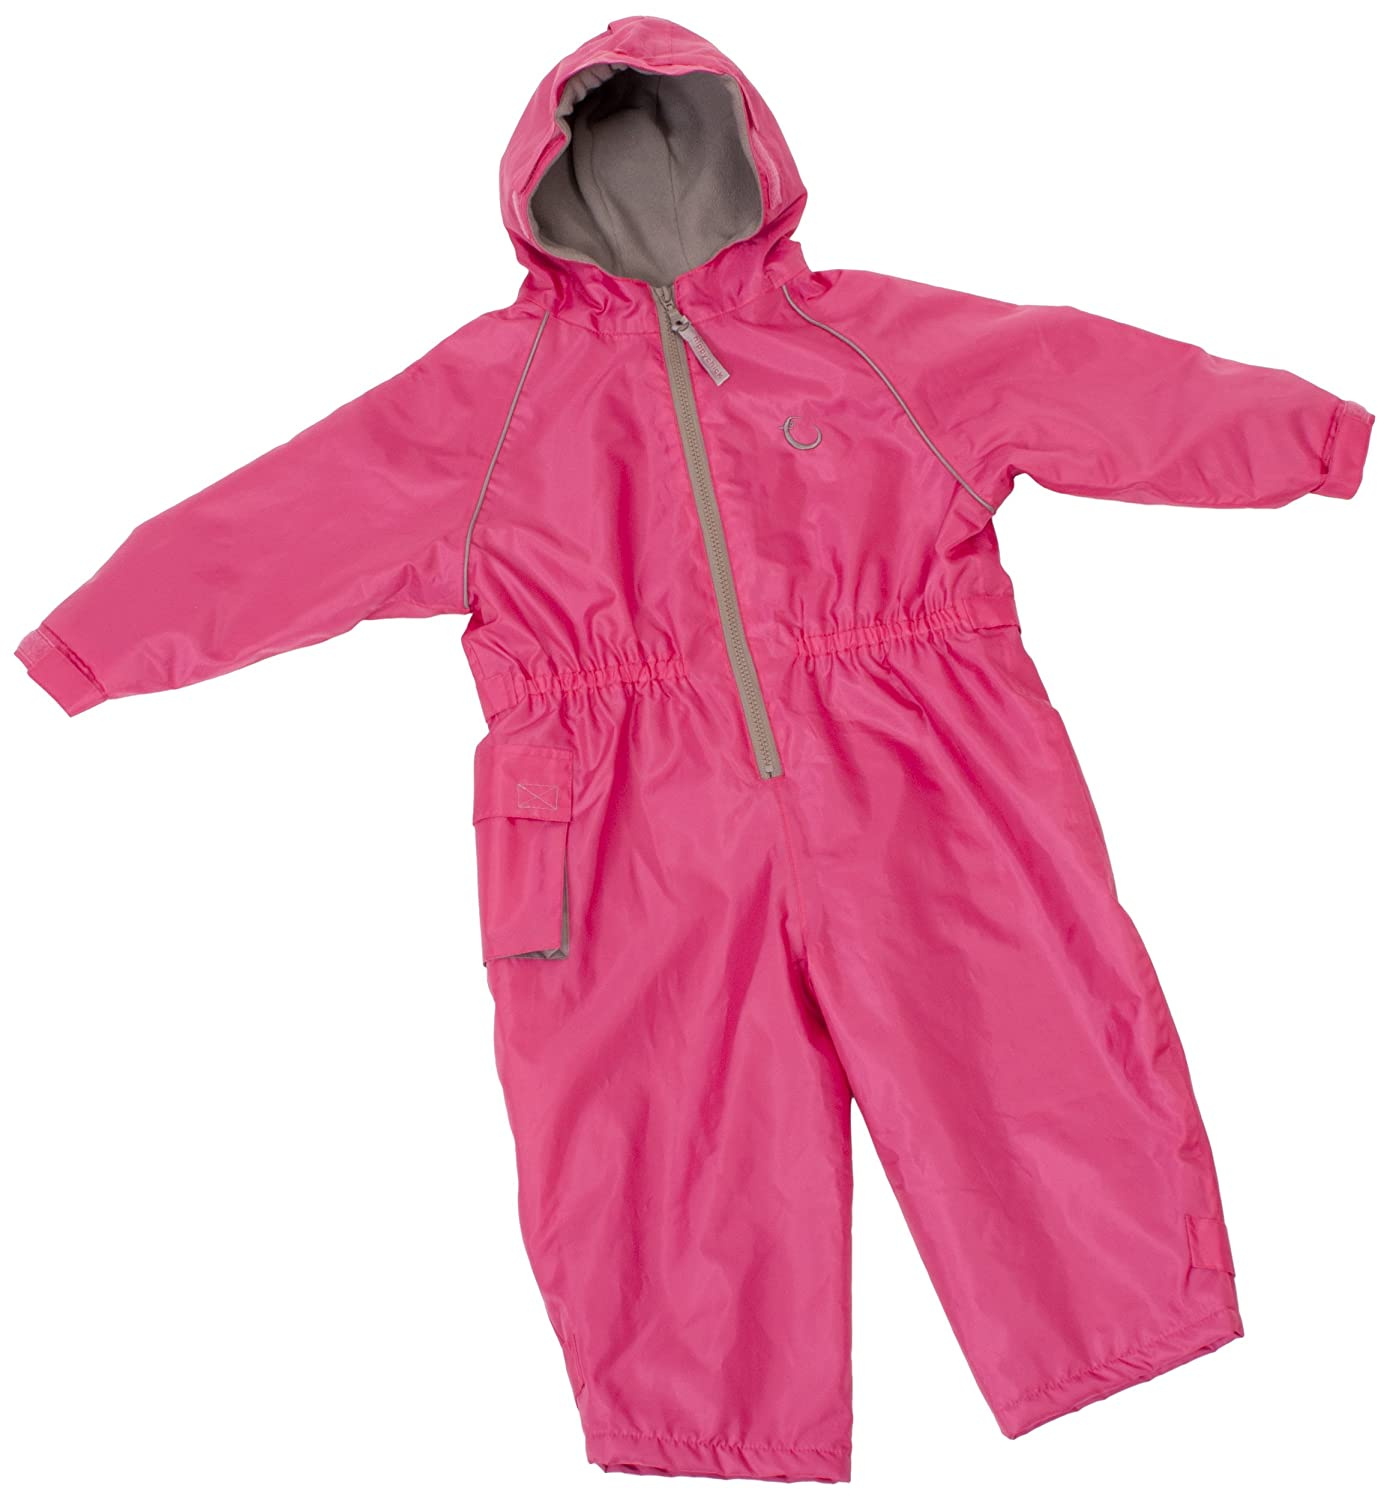 Hippychick Fleece Lined Waterproof All-in-One Suit - Pink, 18-24 Months HWNAPF18-24